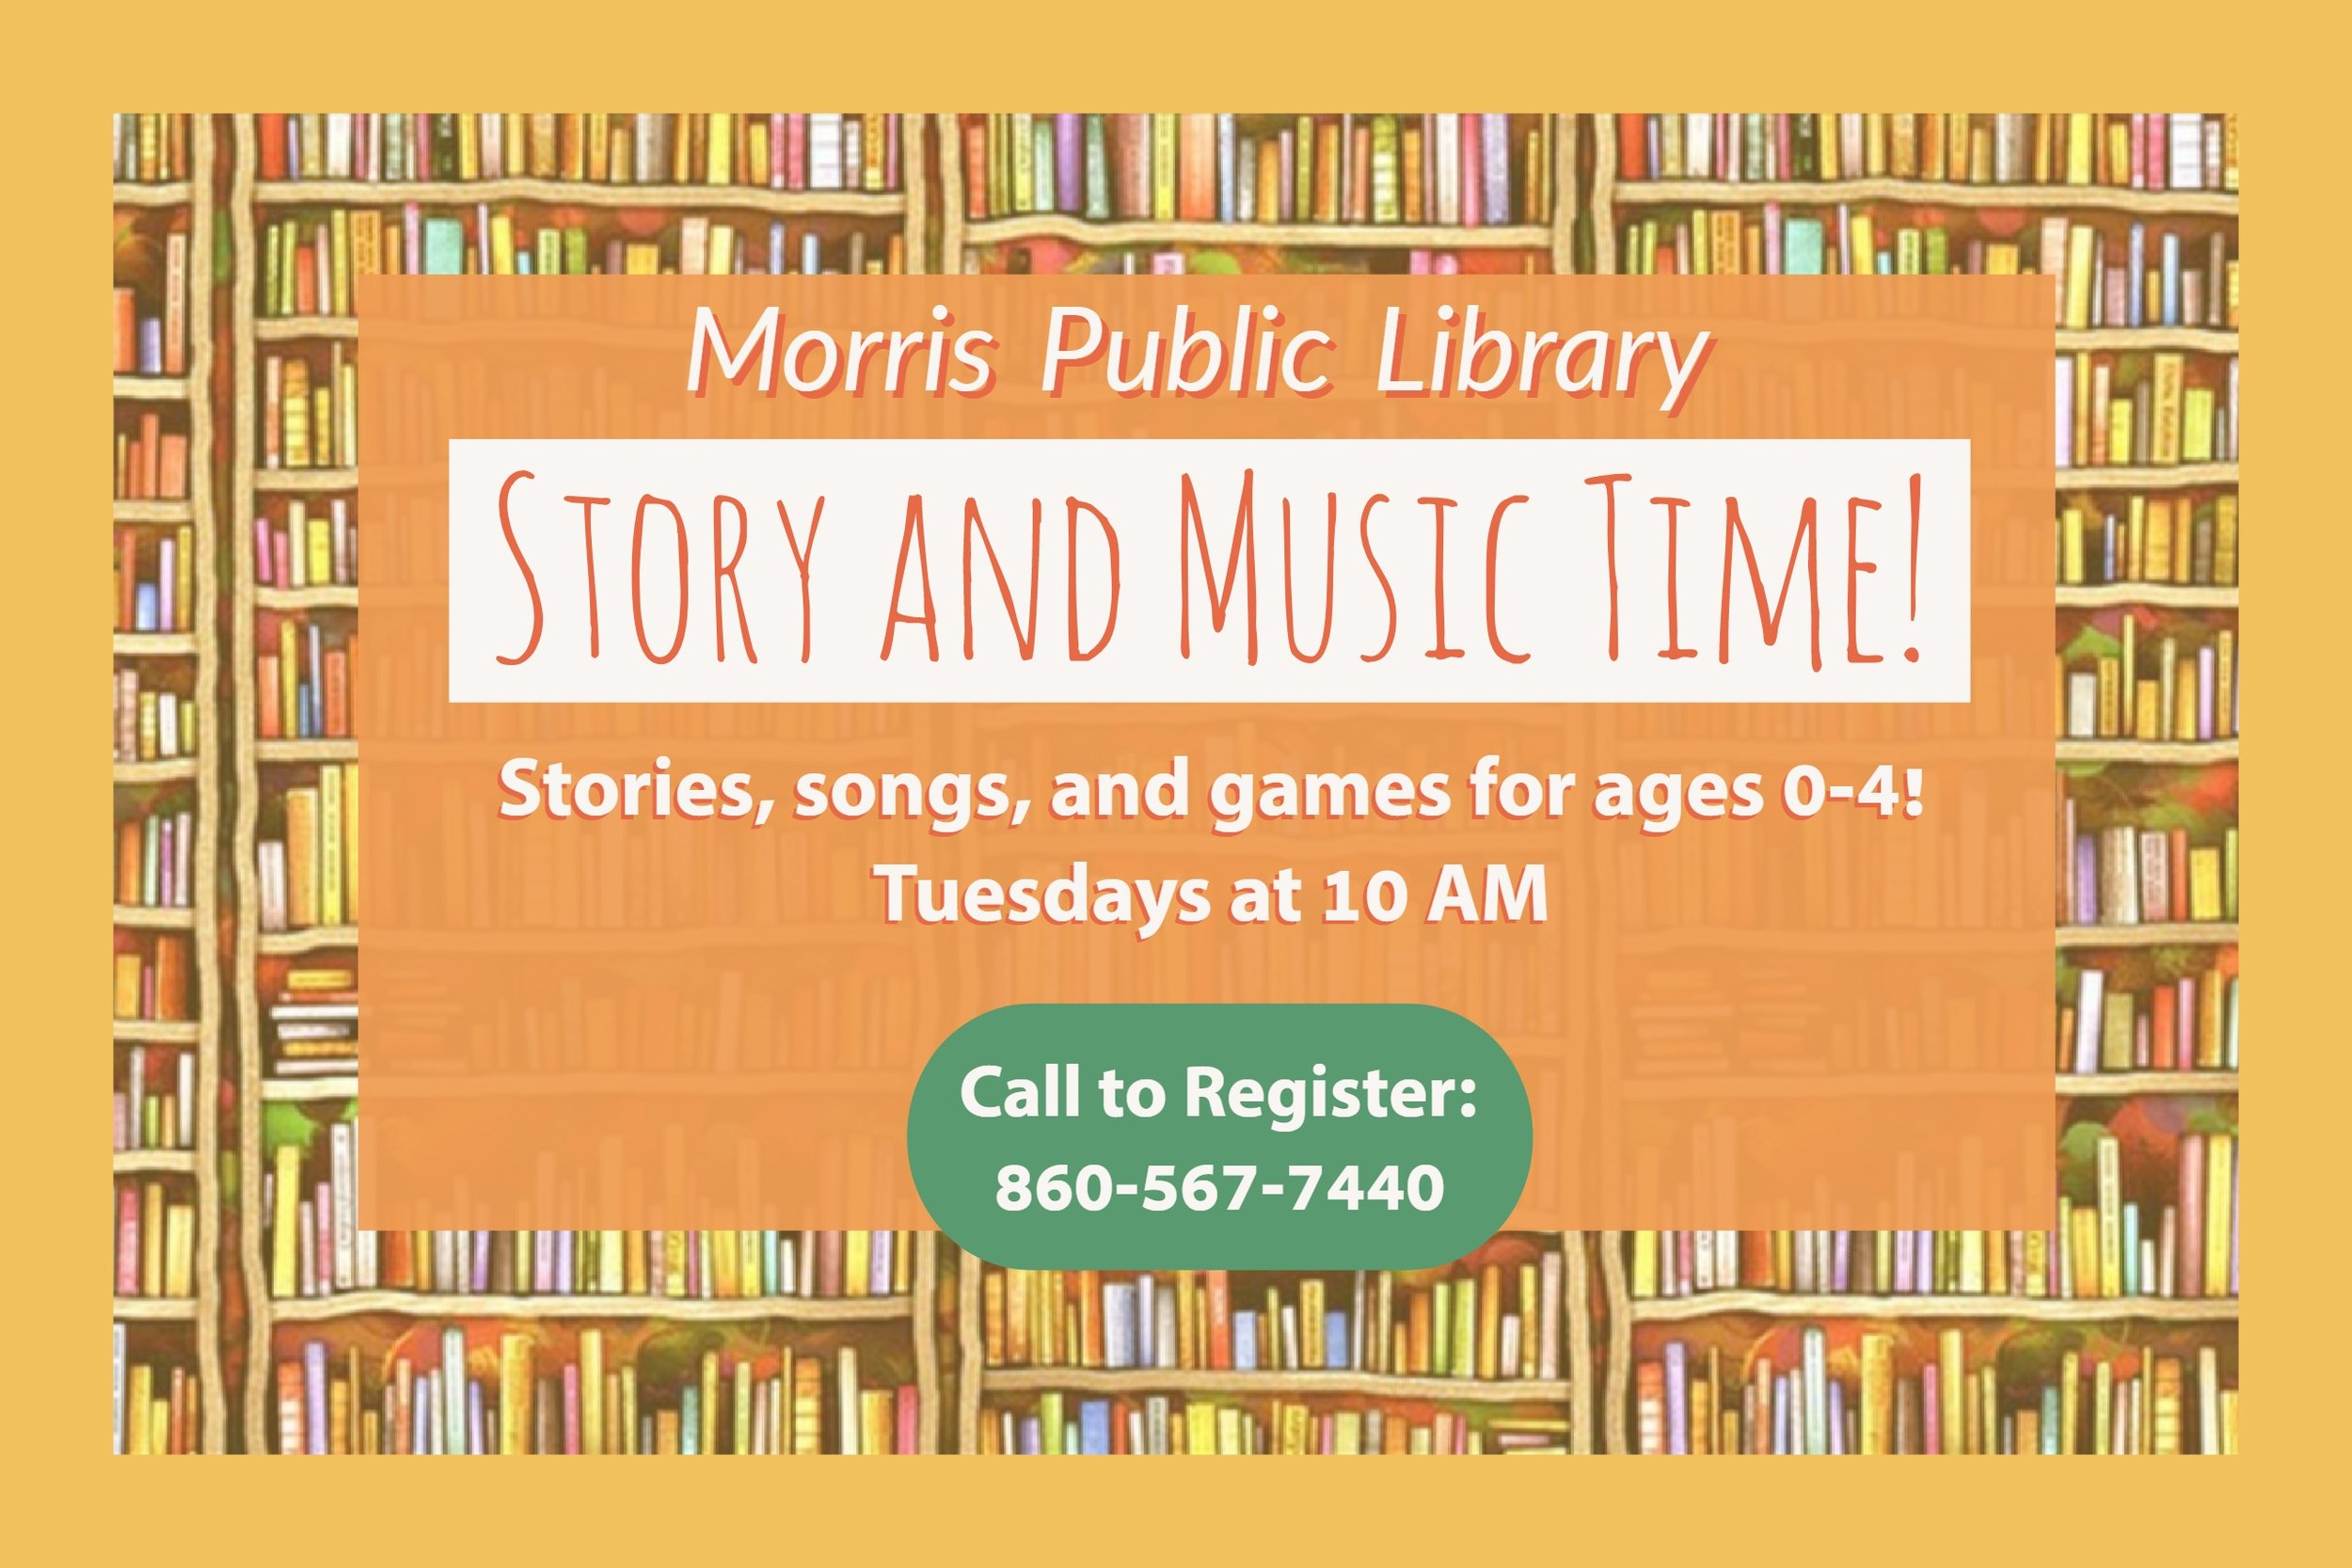 Story_Music_Time_Flyer Morris Public Library.jpg